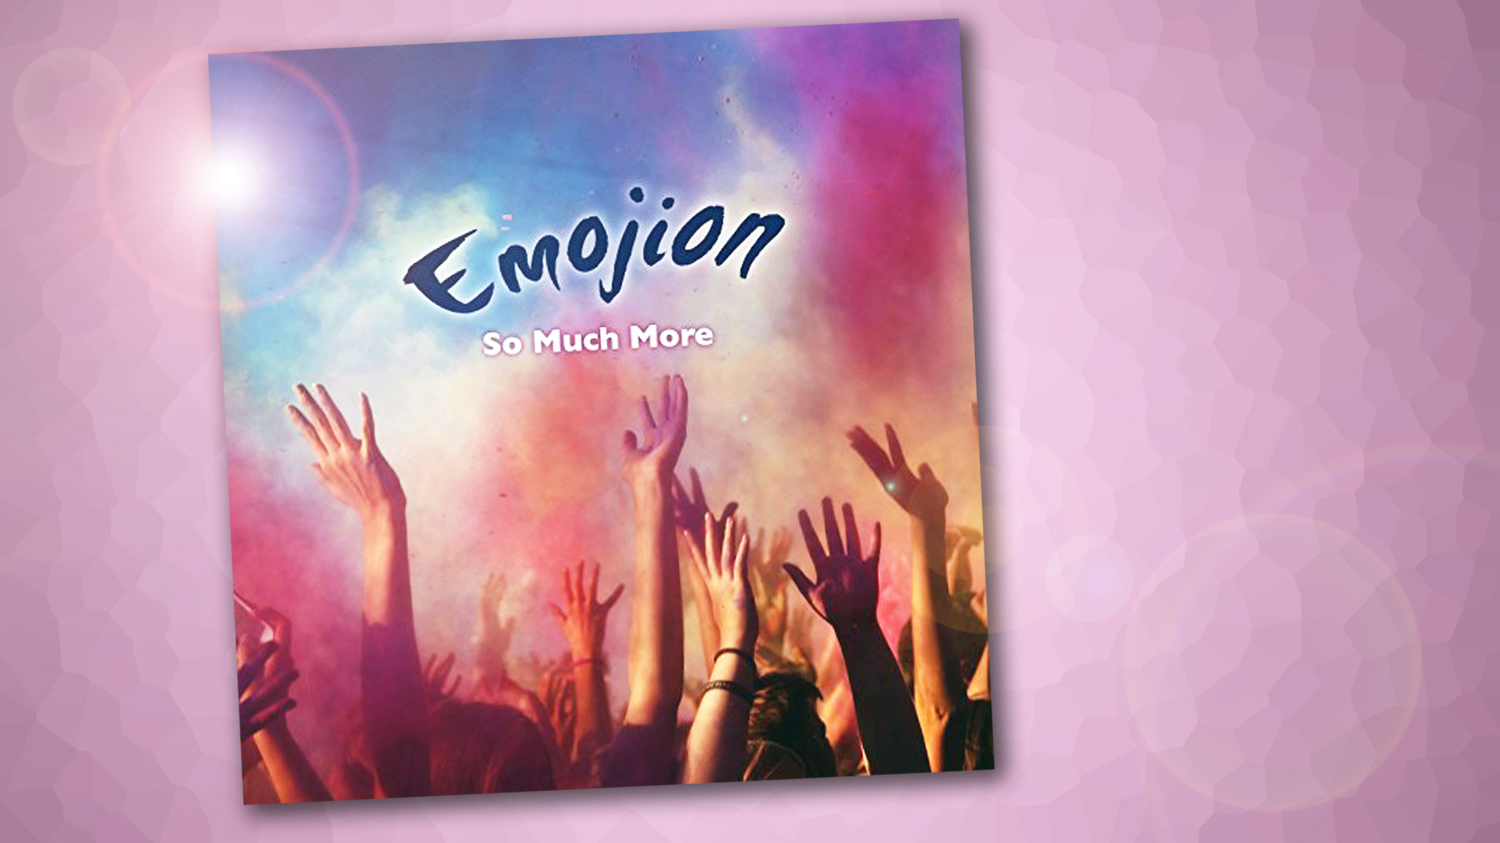 The cover of the single, showing the words 'Emojion' and 'So Much More'